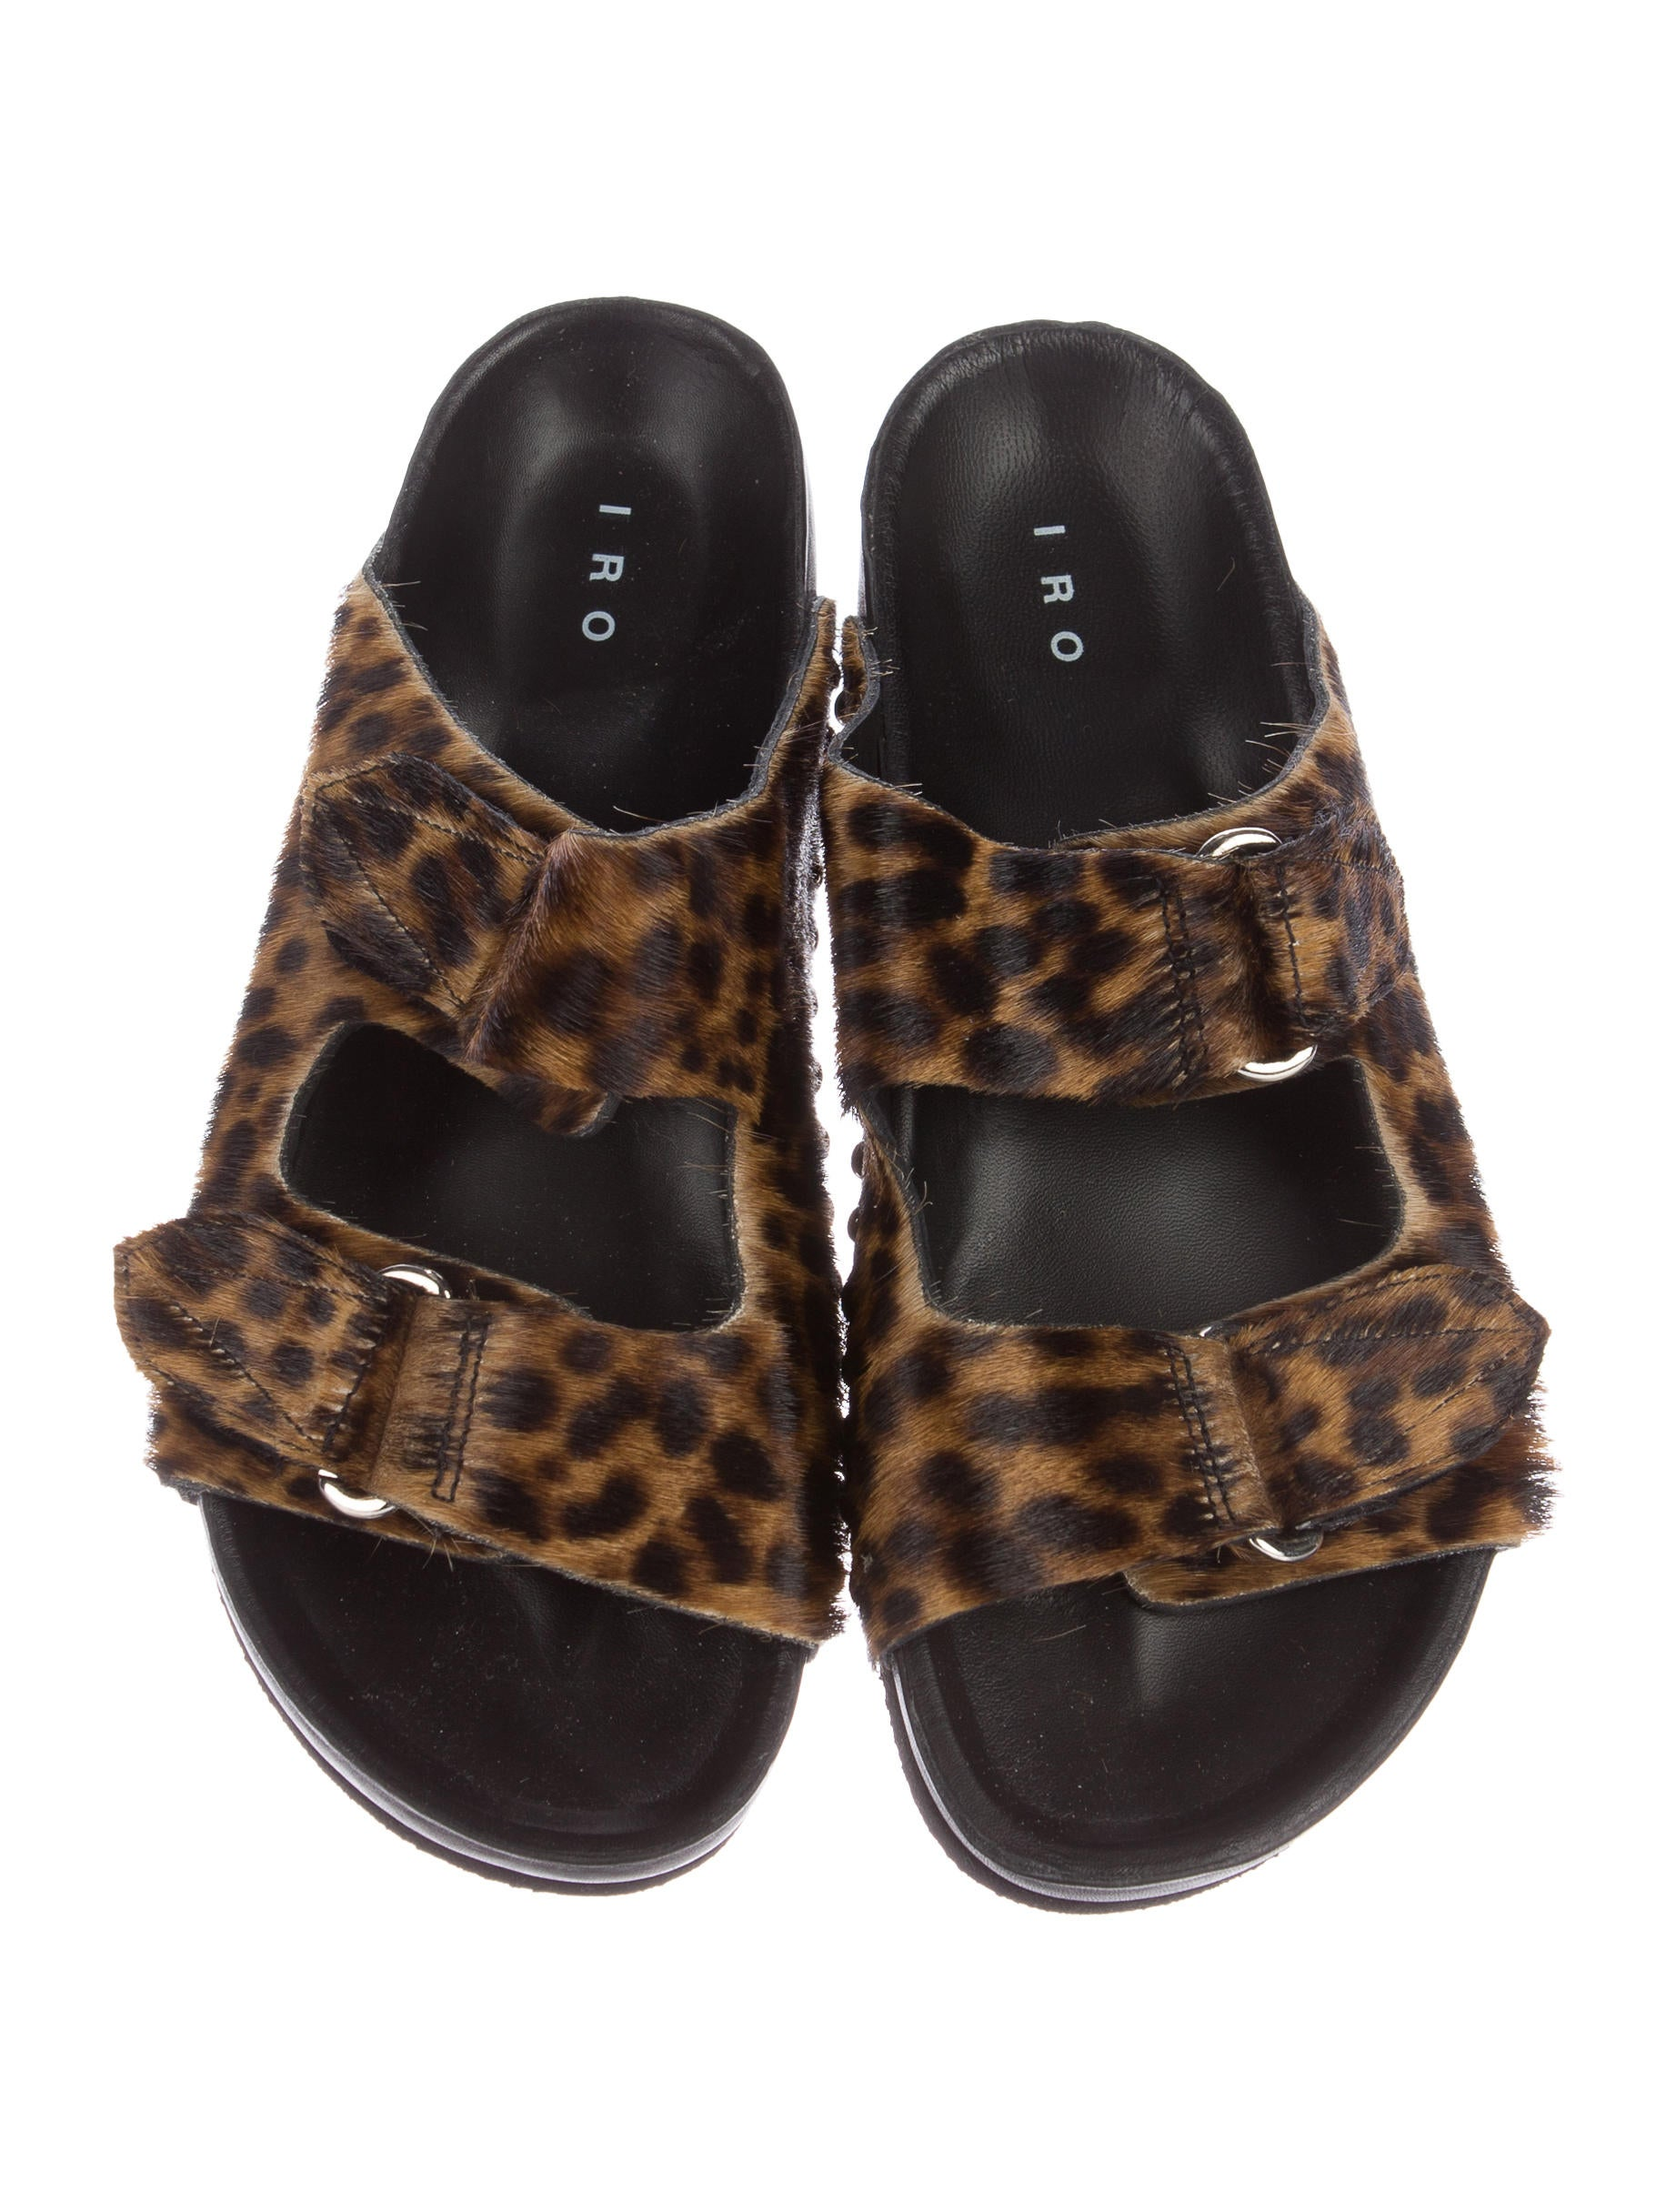 Iro Leopard Print Slide Sandals Shoes Wir30711 The